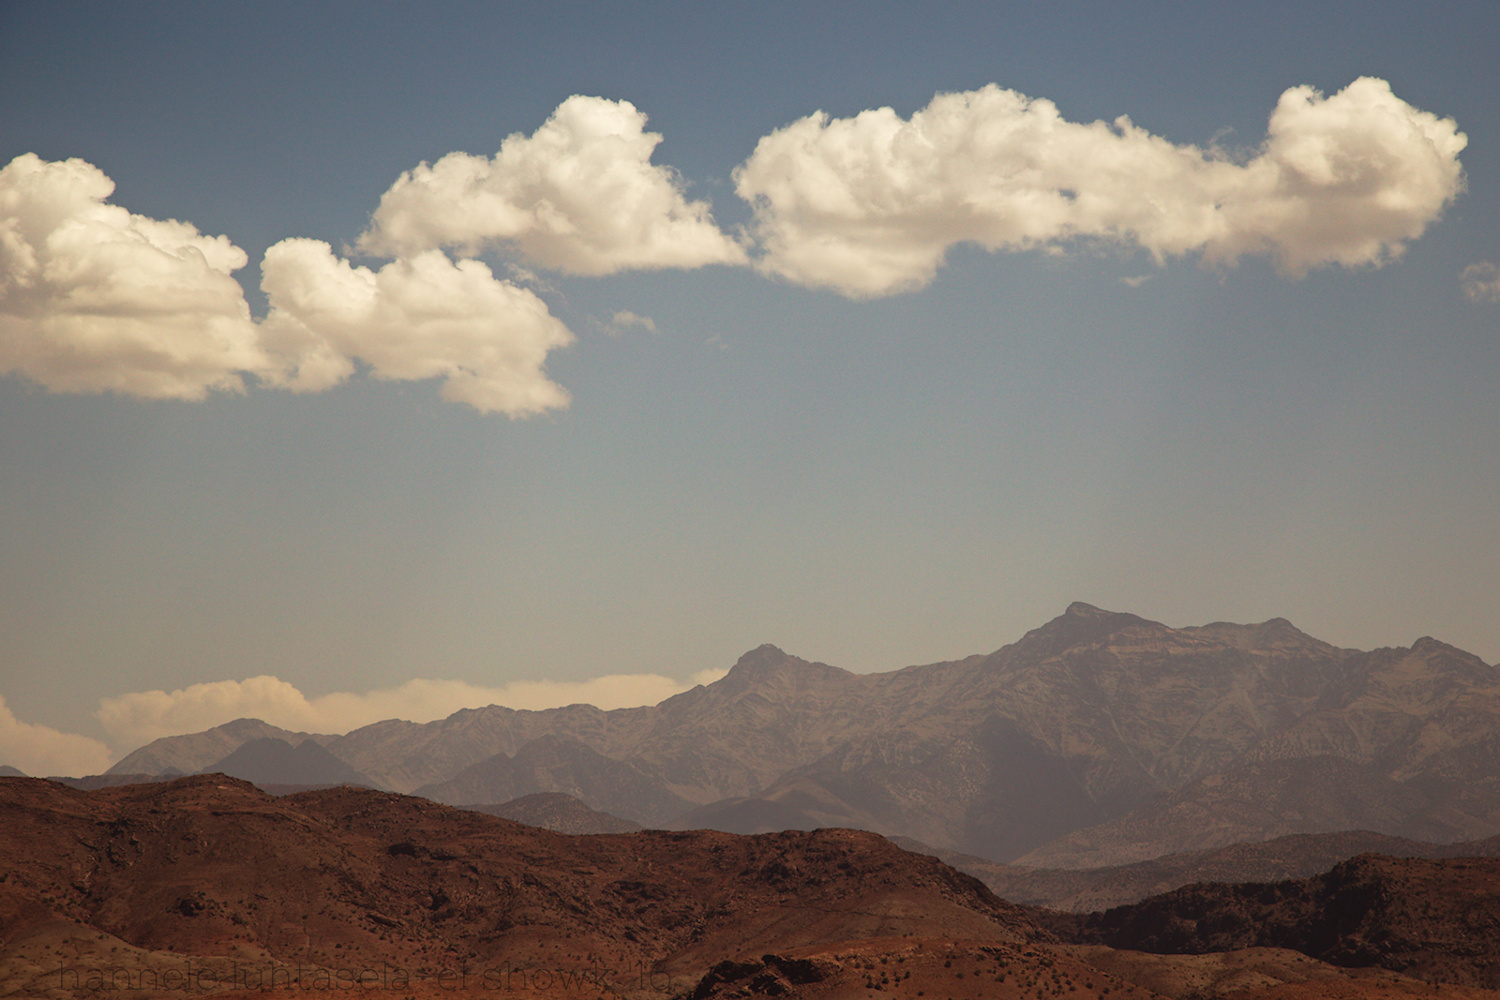 A mountain landscape seen from a highway in Morocco. Tips for Taking Better Pictures from a Moving Vehicle